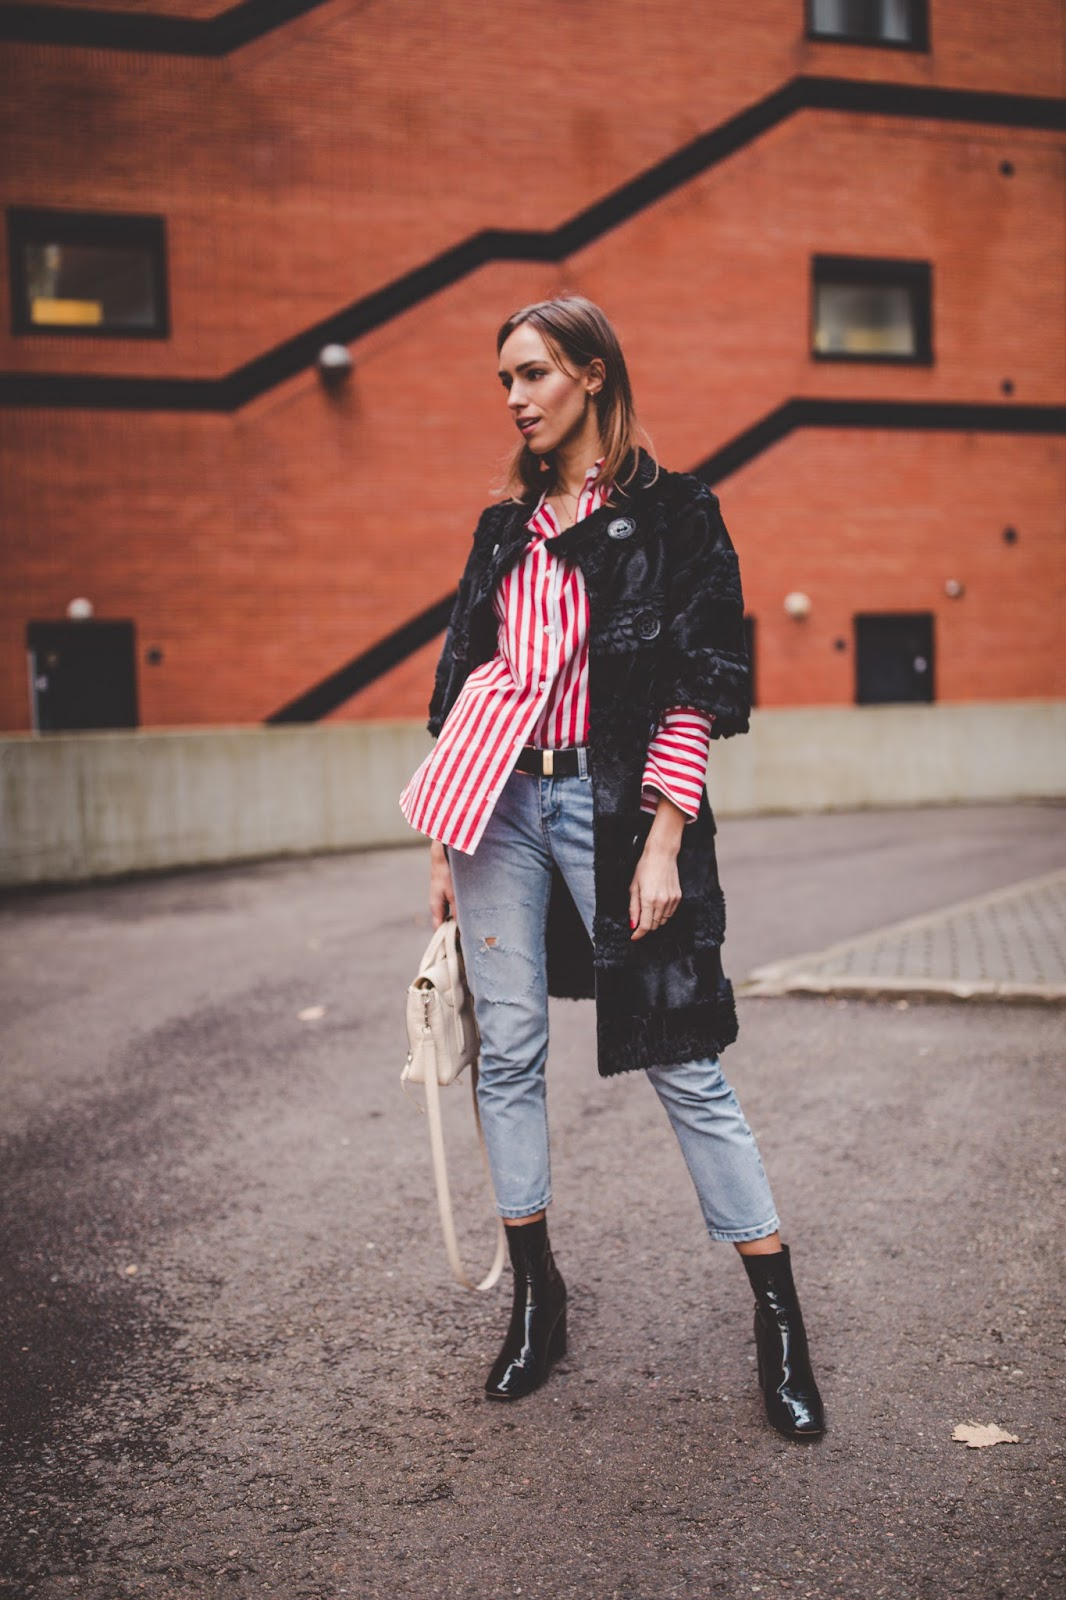 fur coat striped shirt boyfriend jeans boots outfit fall